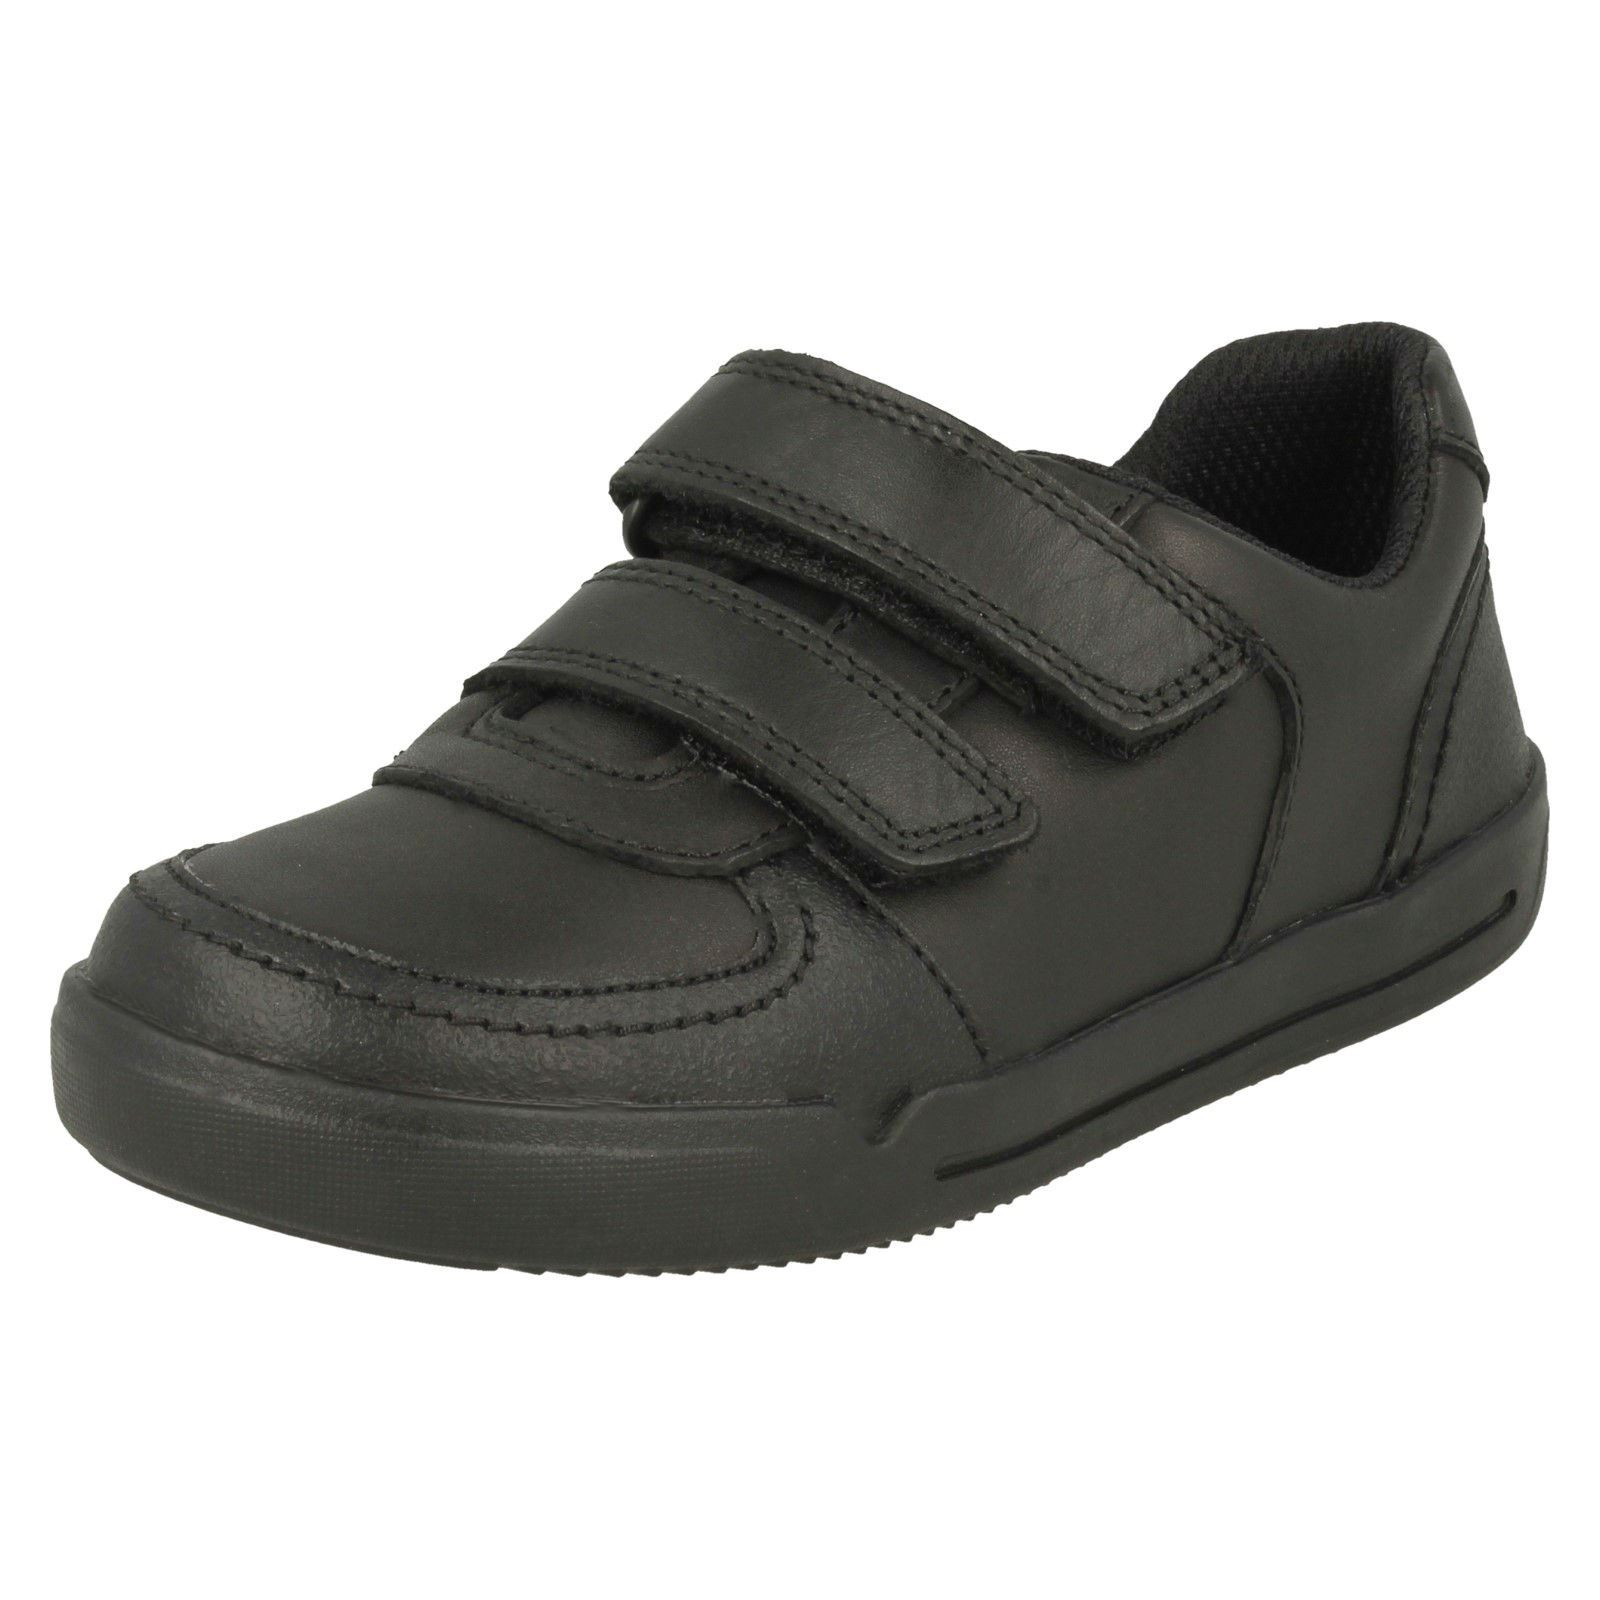 wholesale popular stores outlet Details about Boys Clarks Hook & Loop Fastening Leather School Shoes -  'Mini Racer'